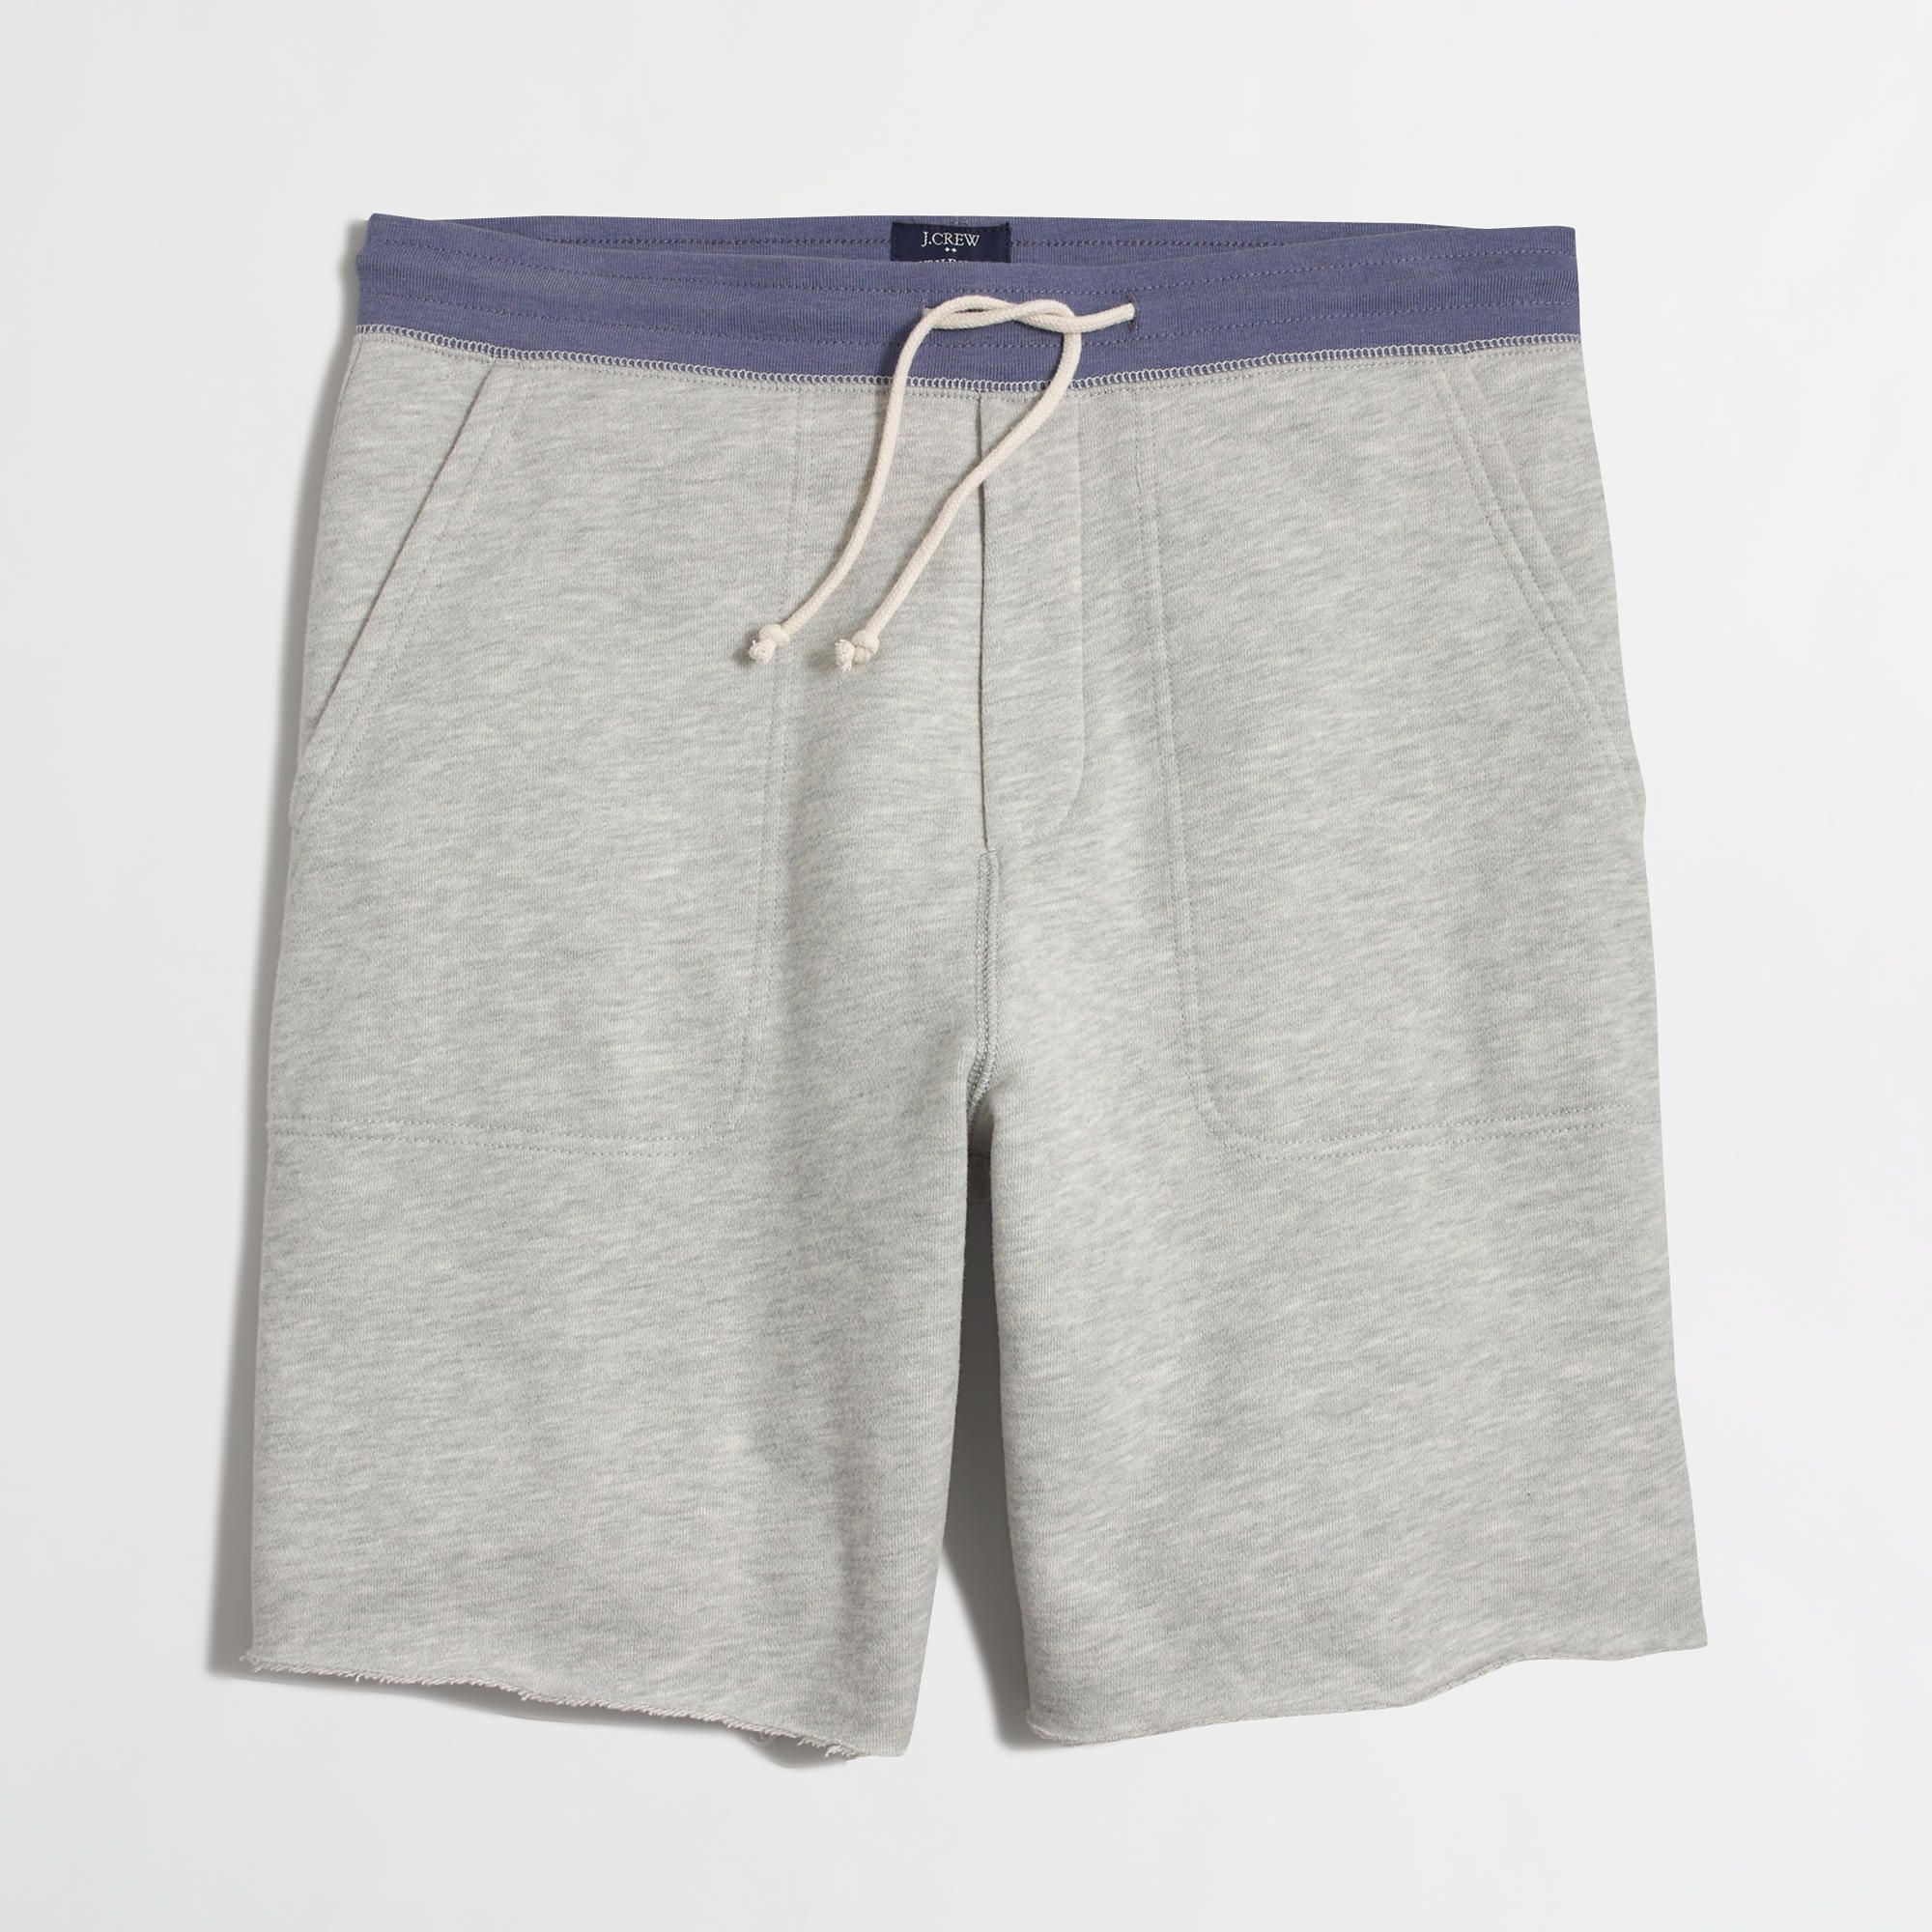 12 Best Mens Shorts in 2016 - Cheap J. Crew Chinos, Sweatshorts ...